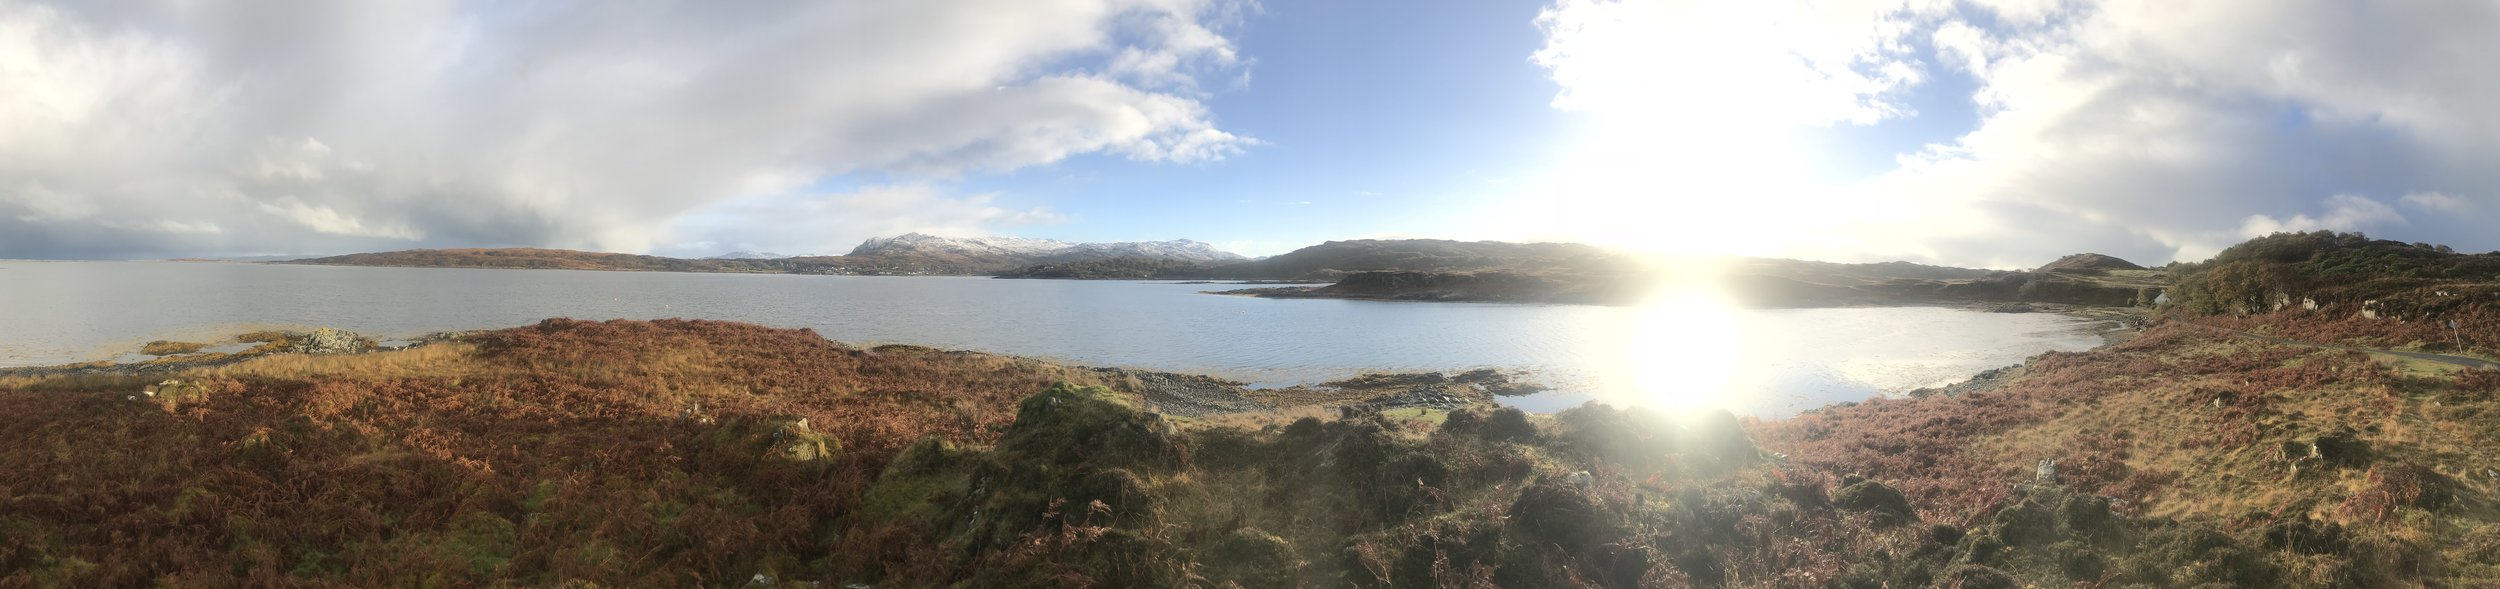 View toward Arisaig